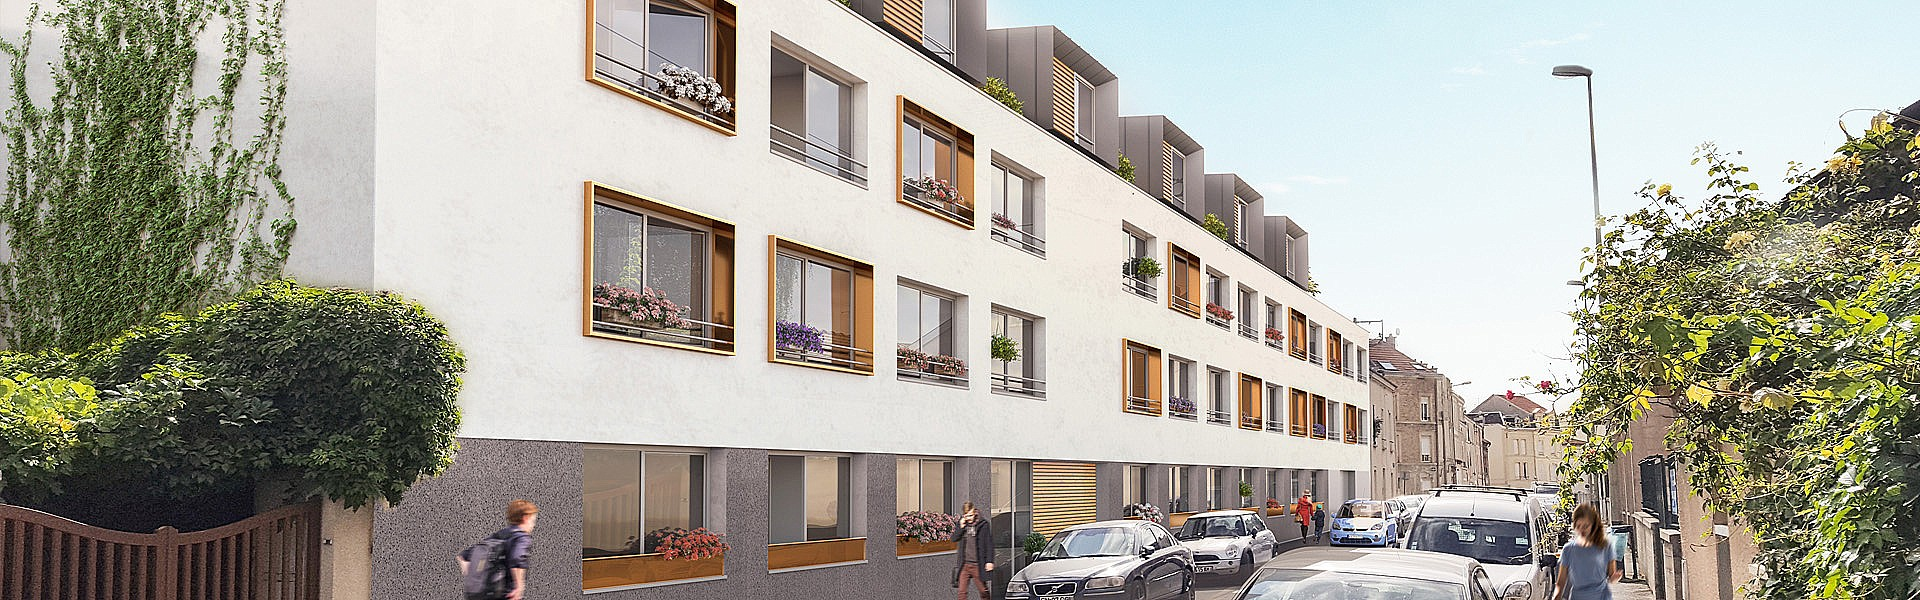 programme immobilier neuf saint thierry reims